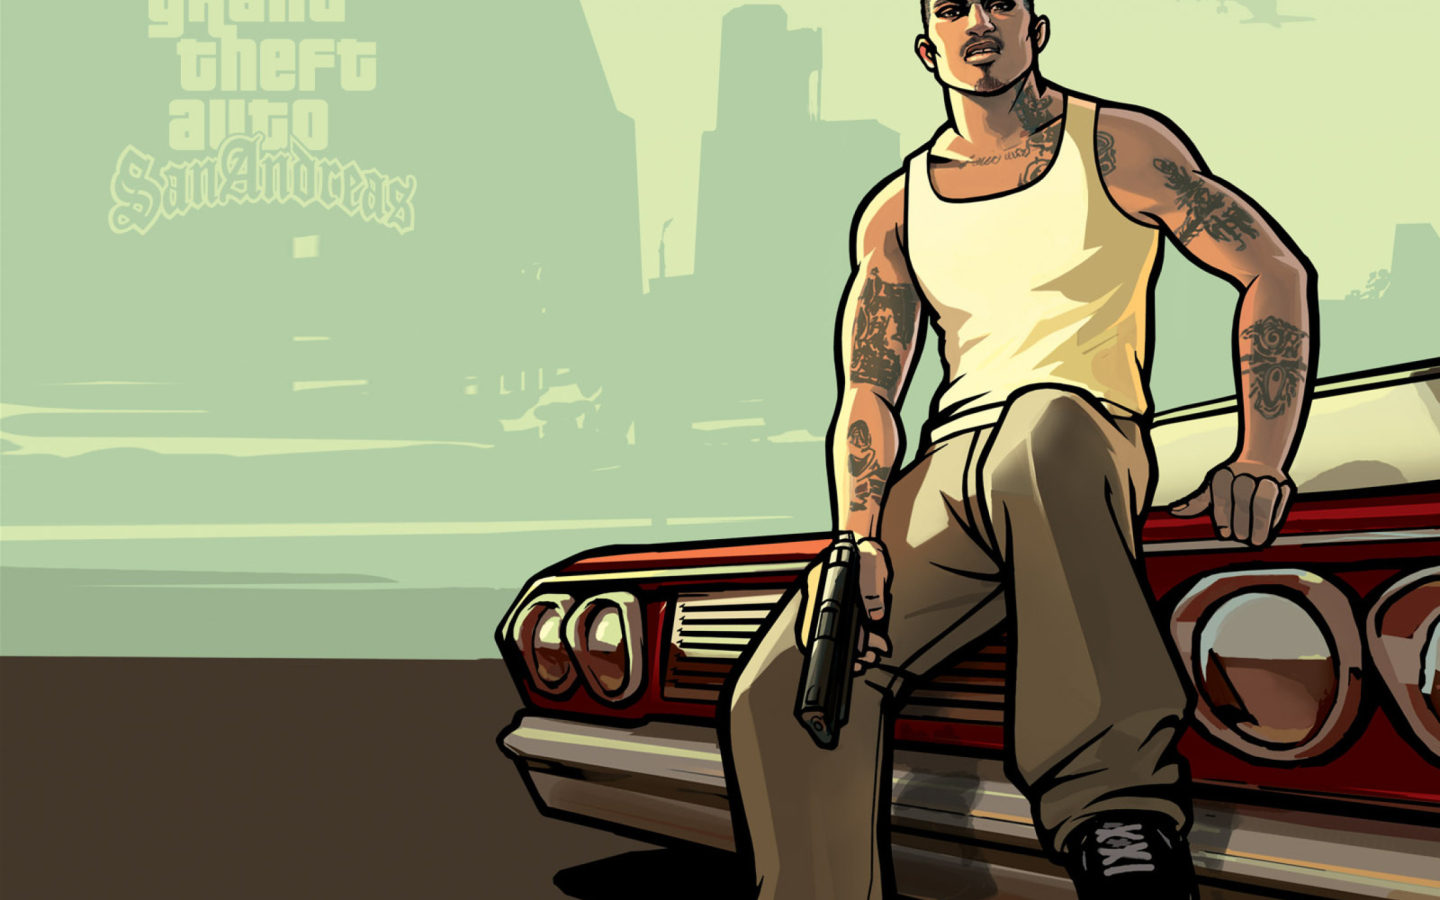 Gta San Andreas wallpaper 1440x900